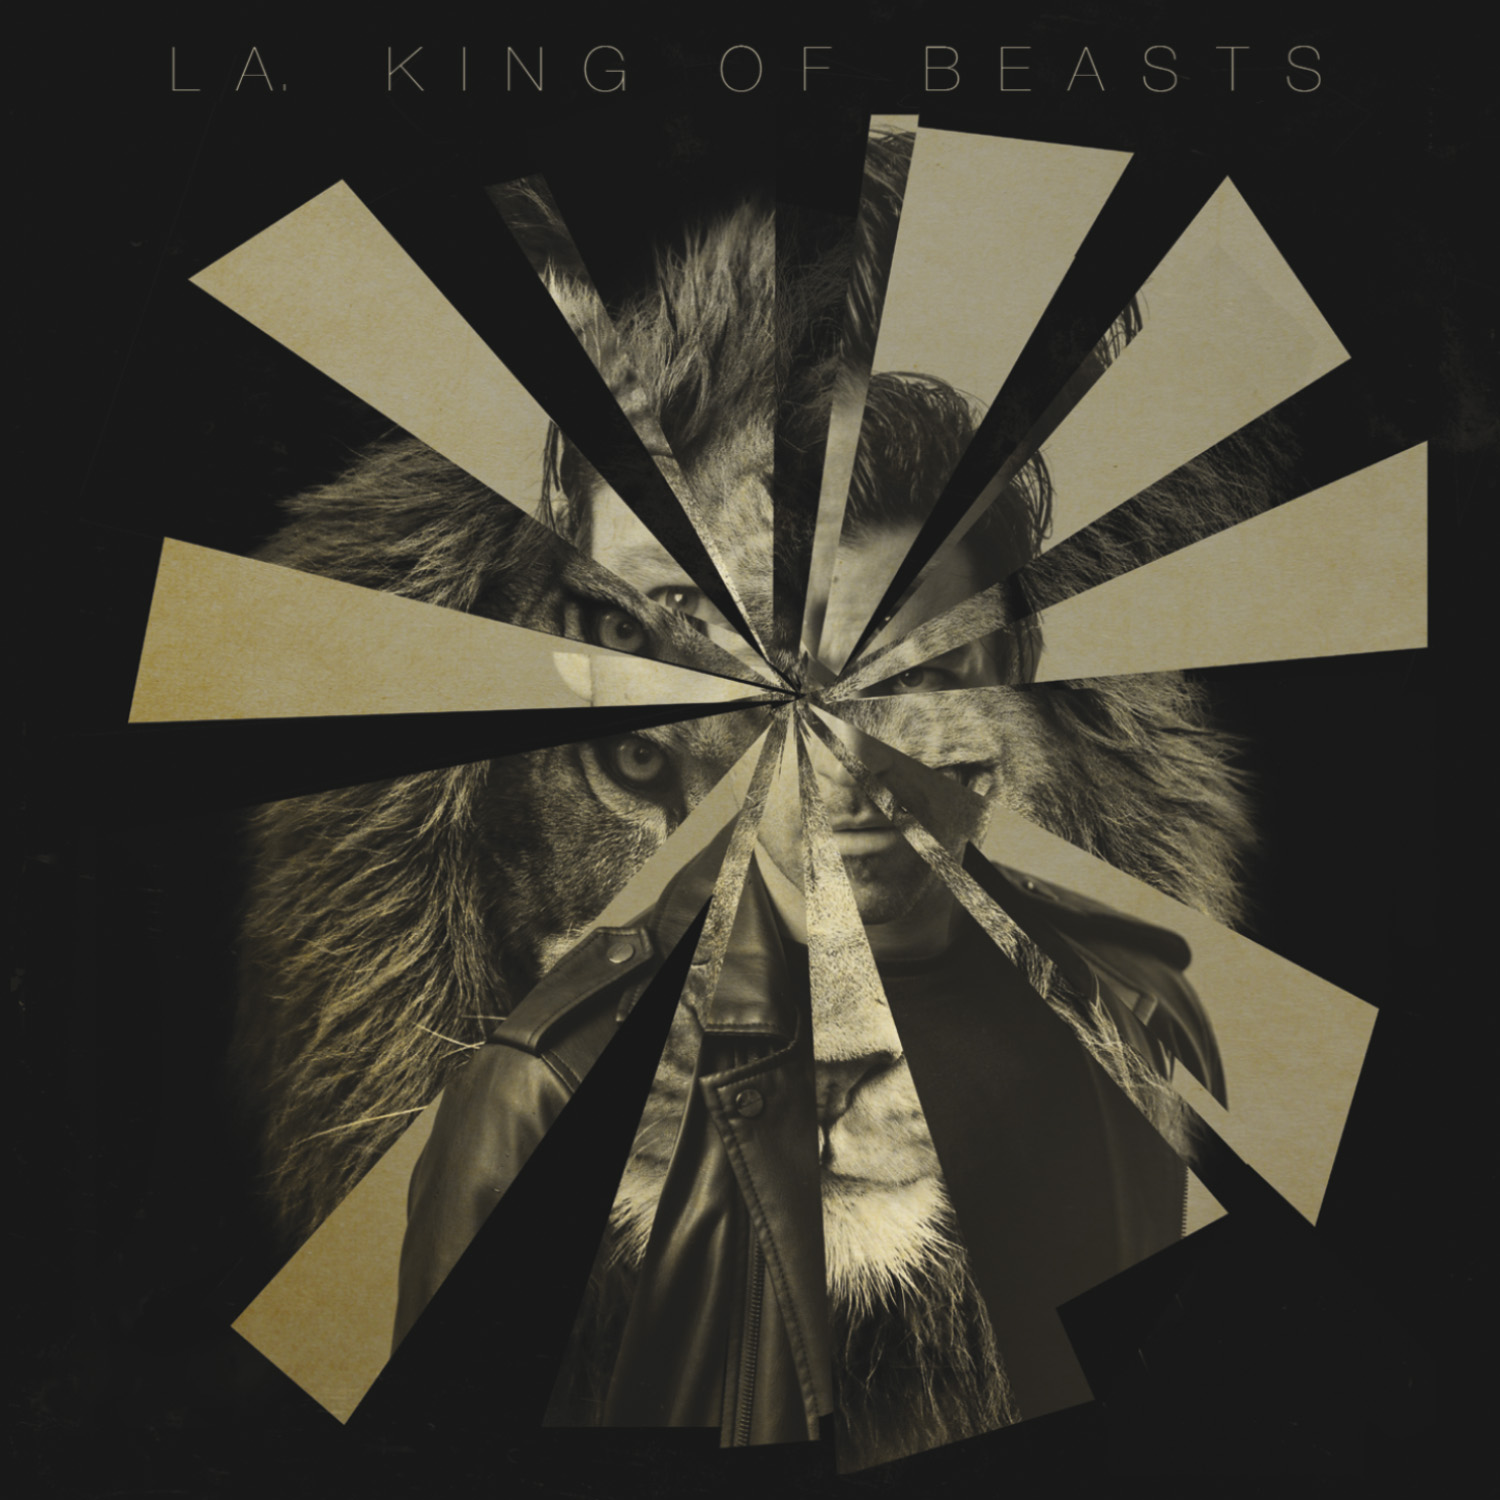 """King of Beasts"" de L.A. se coloca en el #8 de la lista de ventas"